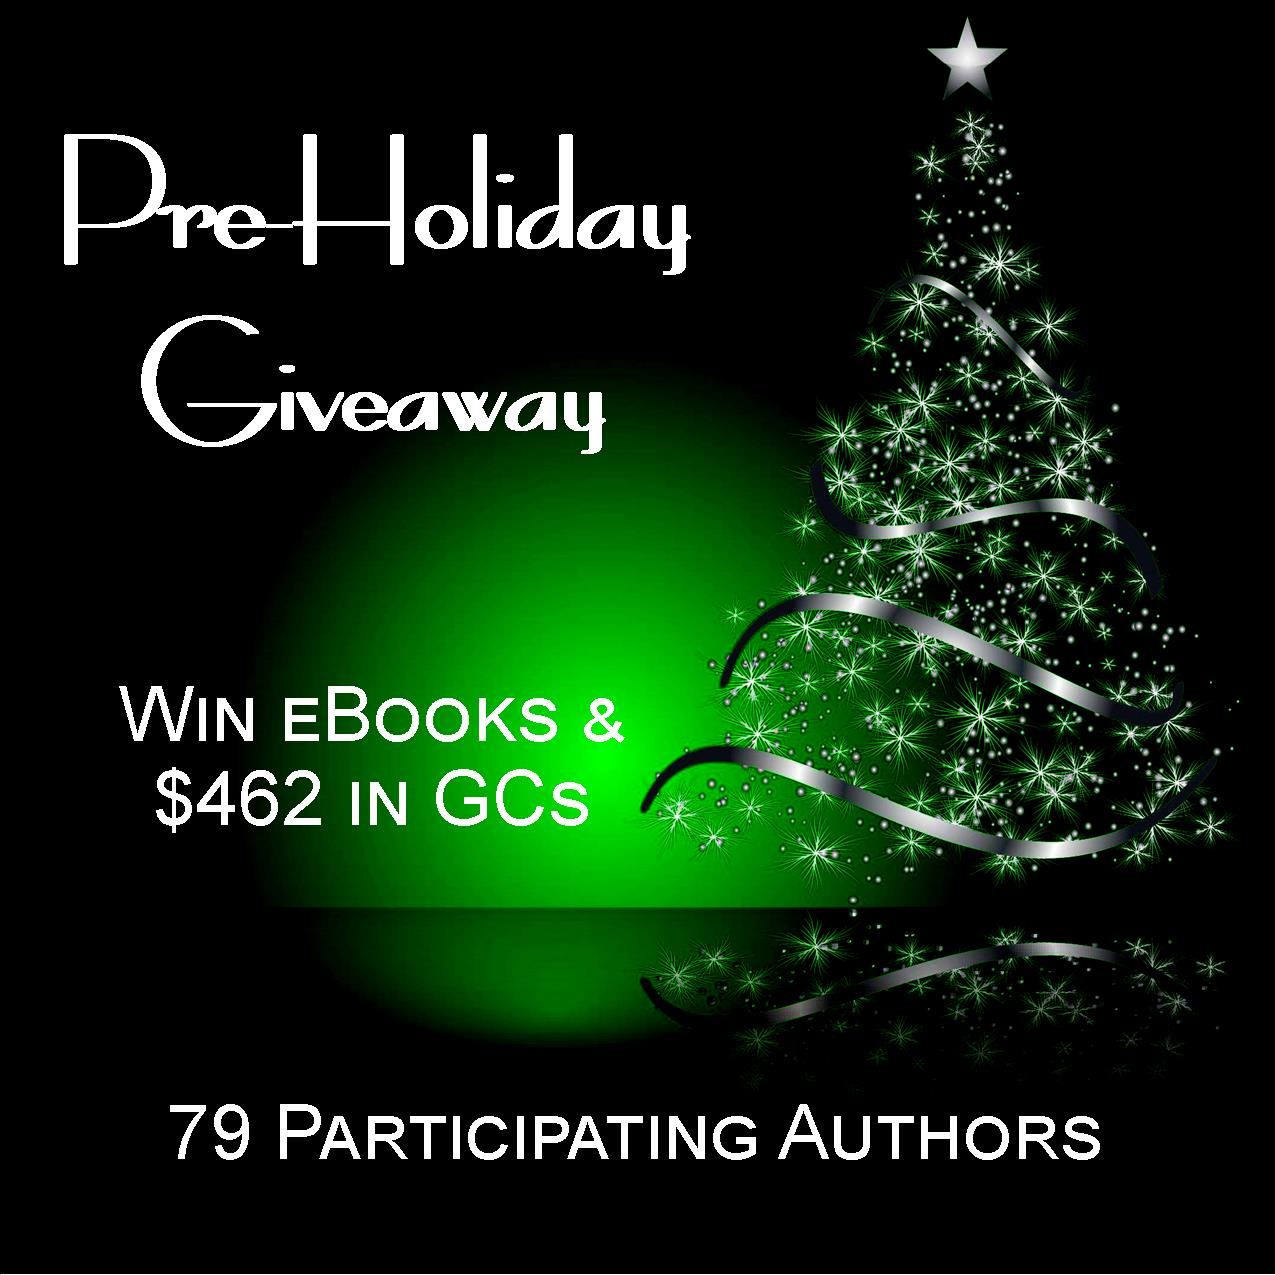 Pre-holiday Giveaway 10/01-12/01